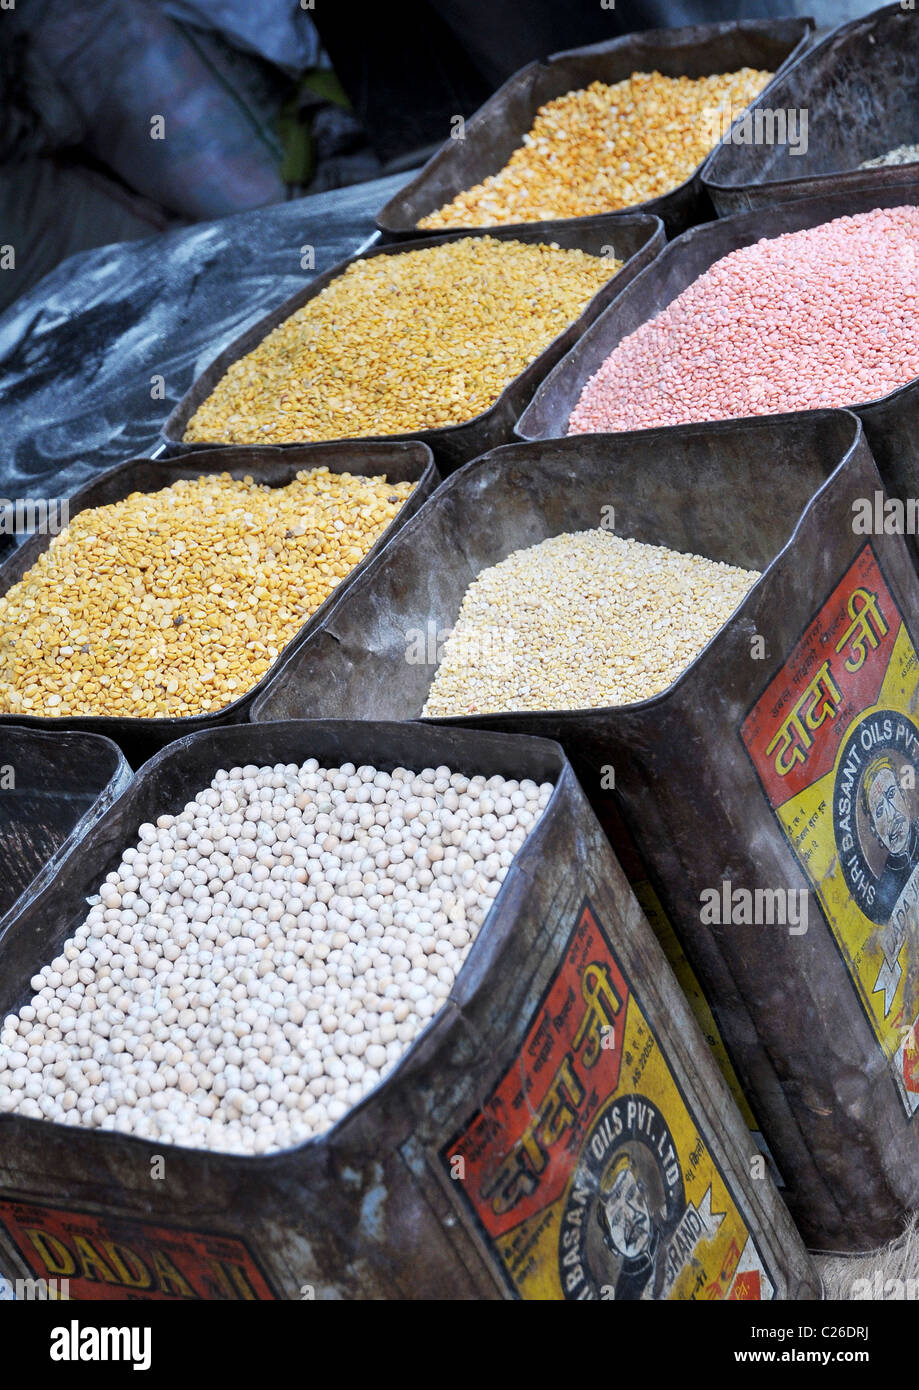 Tins of seeds/spices on a stall, Agra, India - Stock Image